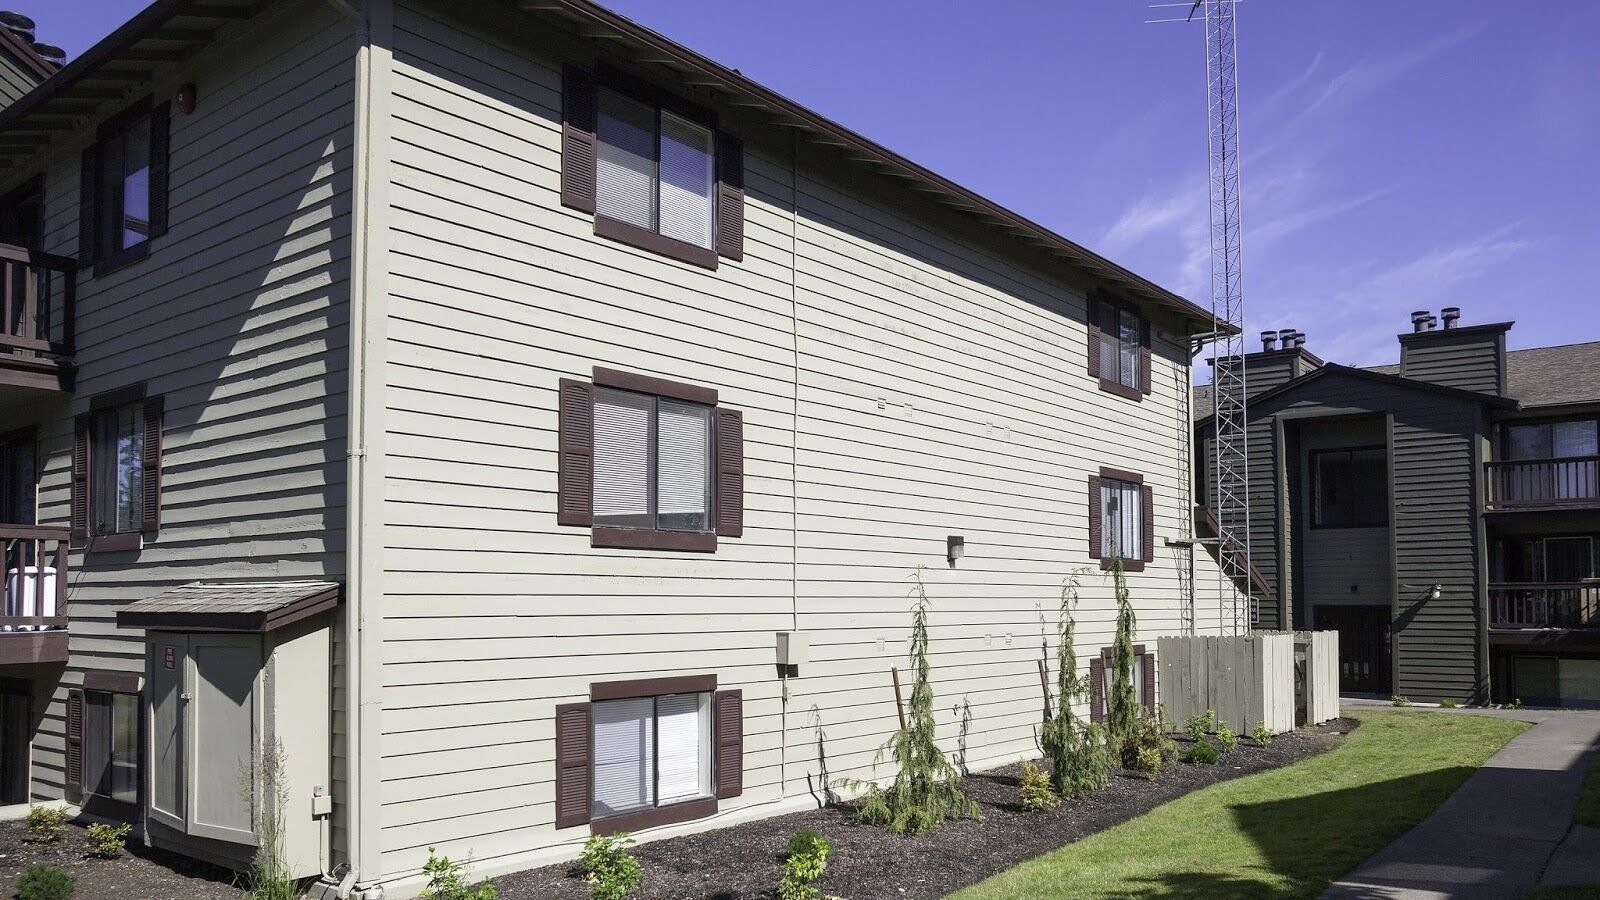 CrownPointeApartments3.jpeg